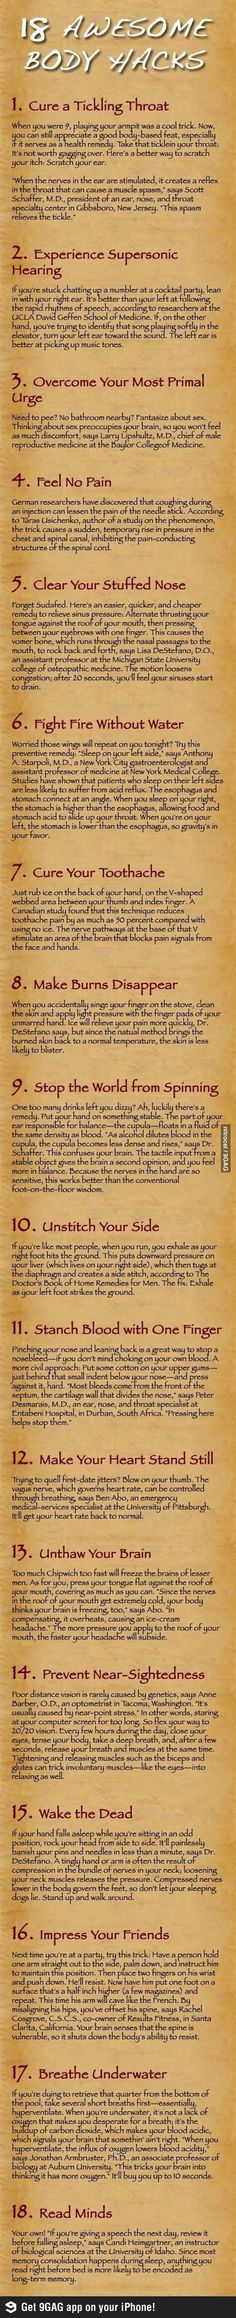 "Number 15 is a lifesaver!! As for #4, I'm pretty sure that's a terrible idea. ""18 Awesome Body Hacks 